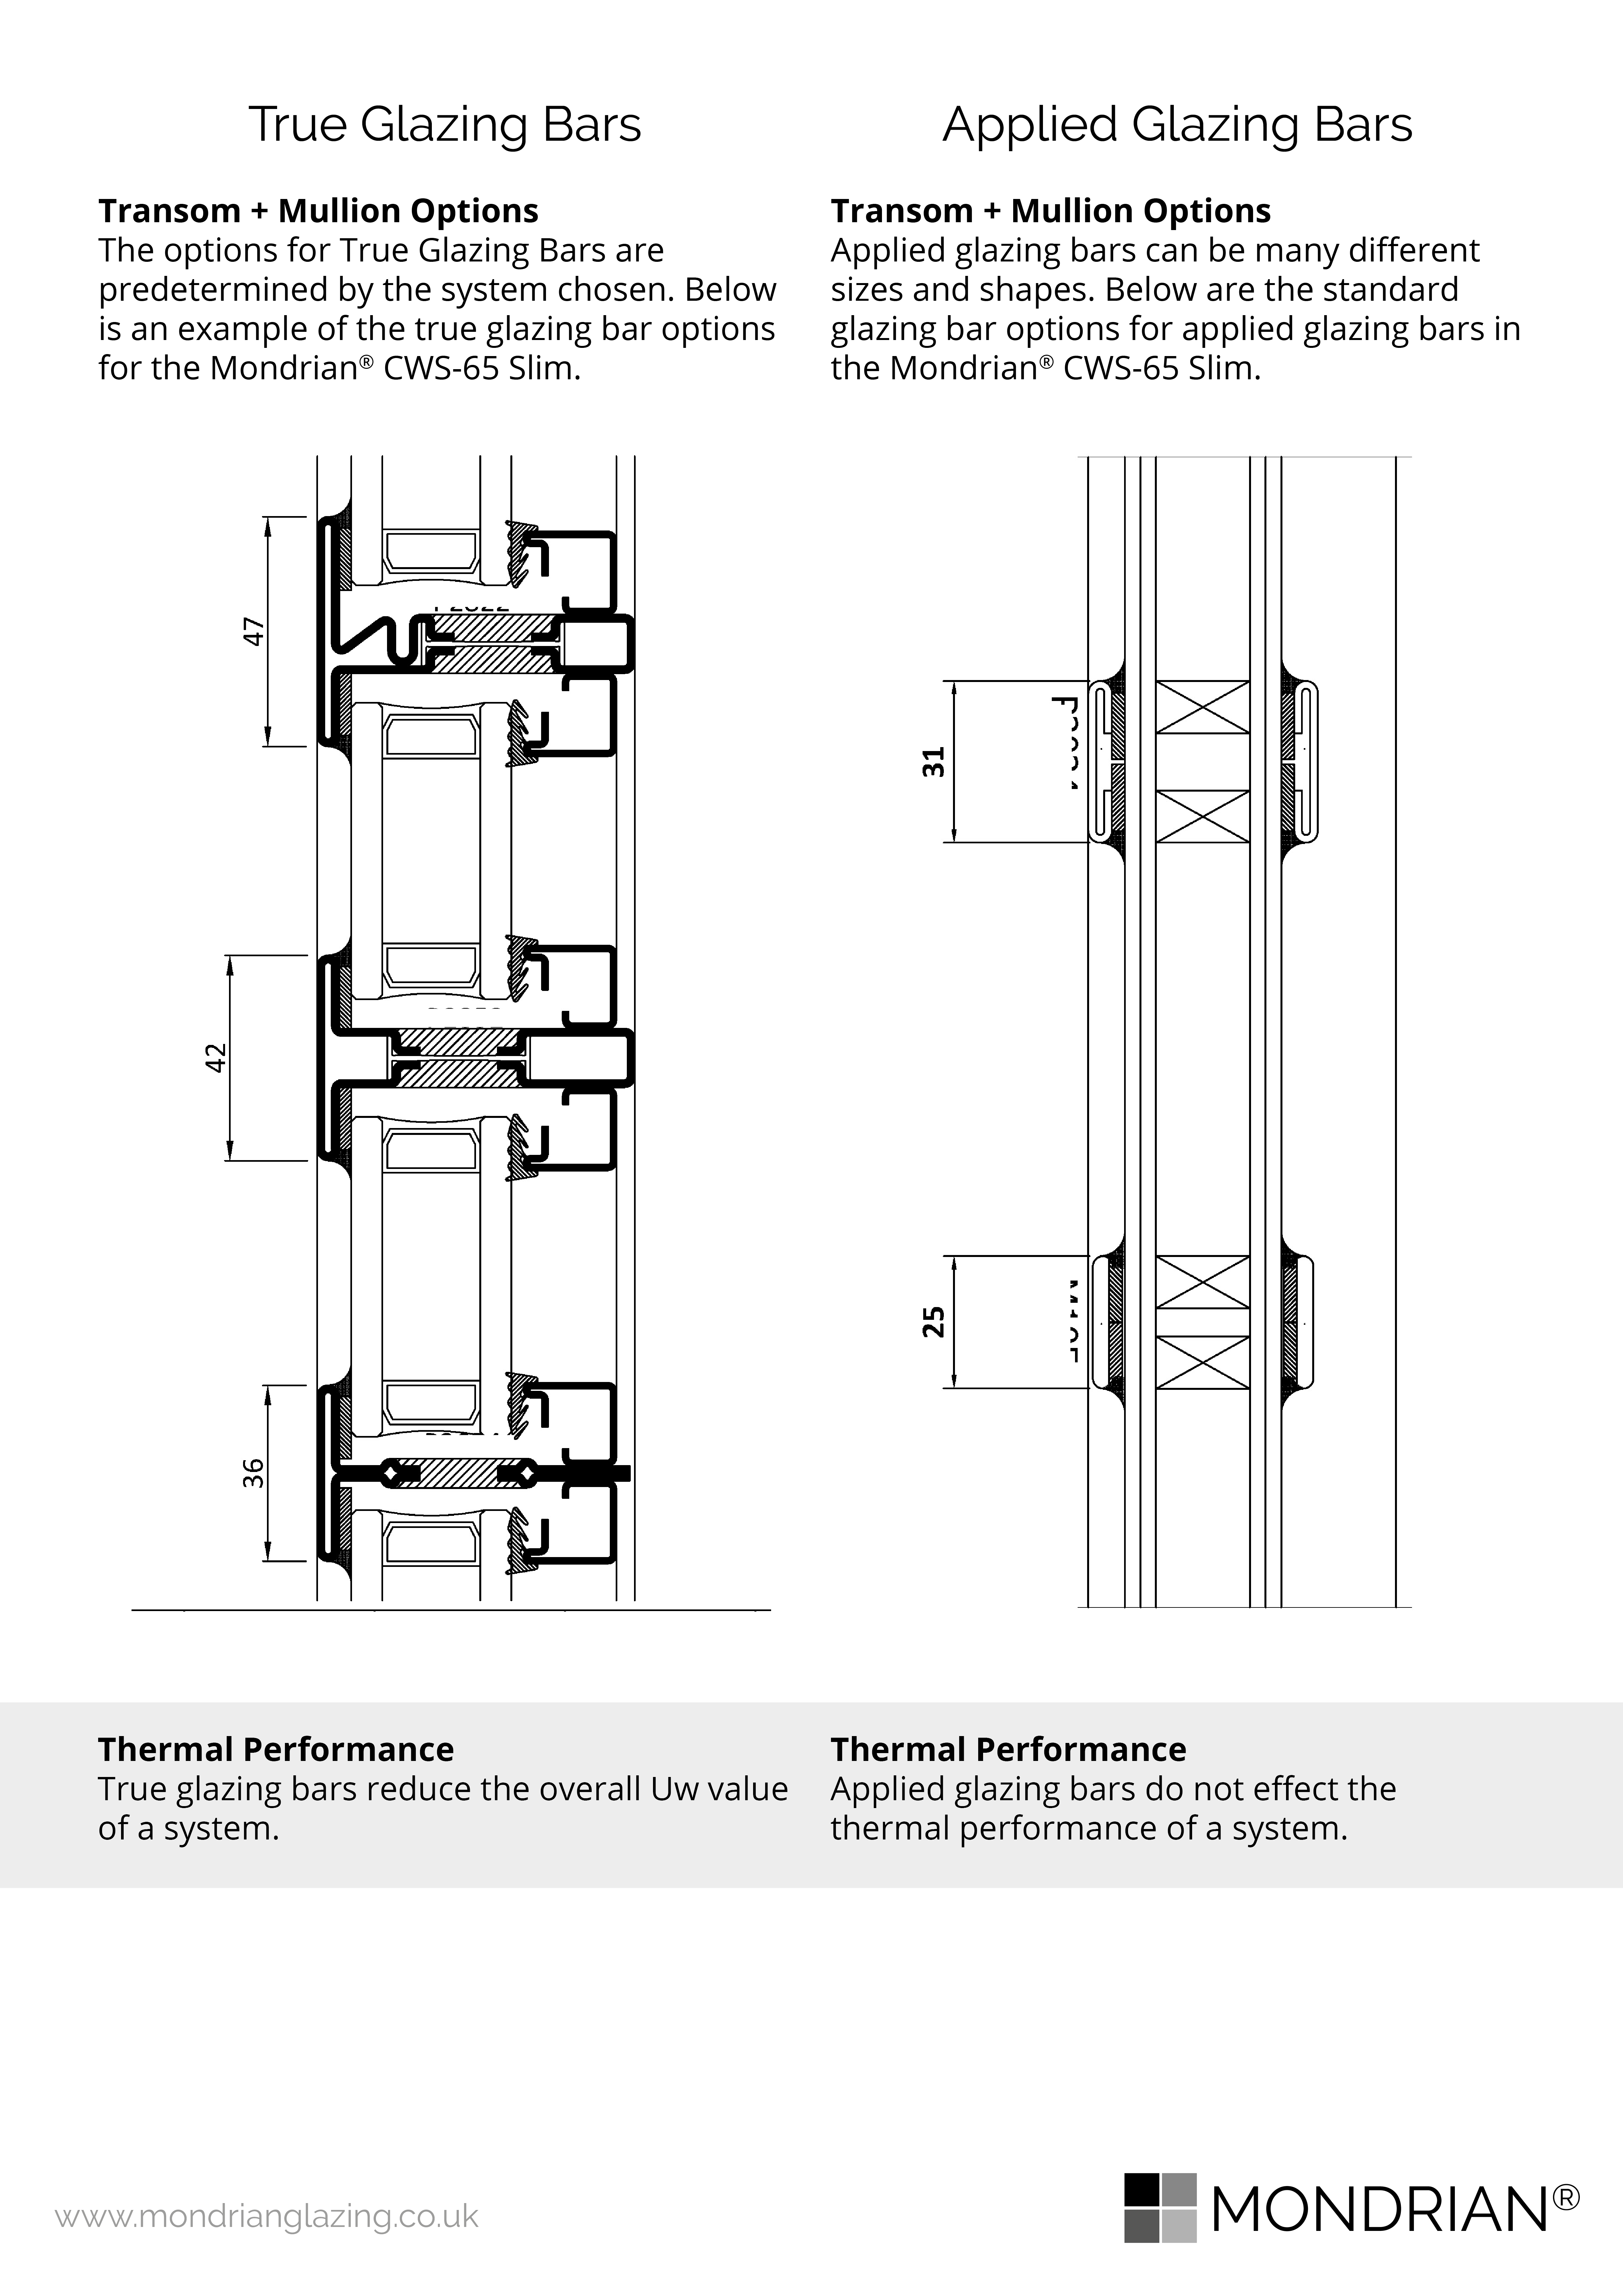 hight resolution of true vs applied glazing bars diagram